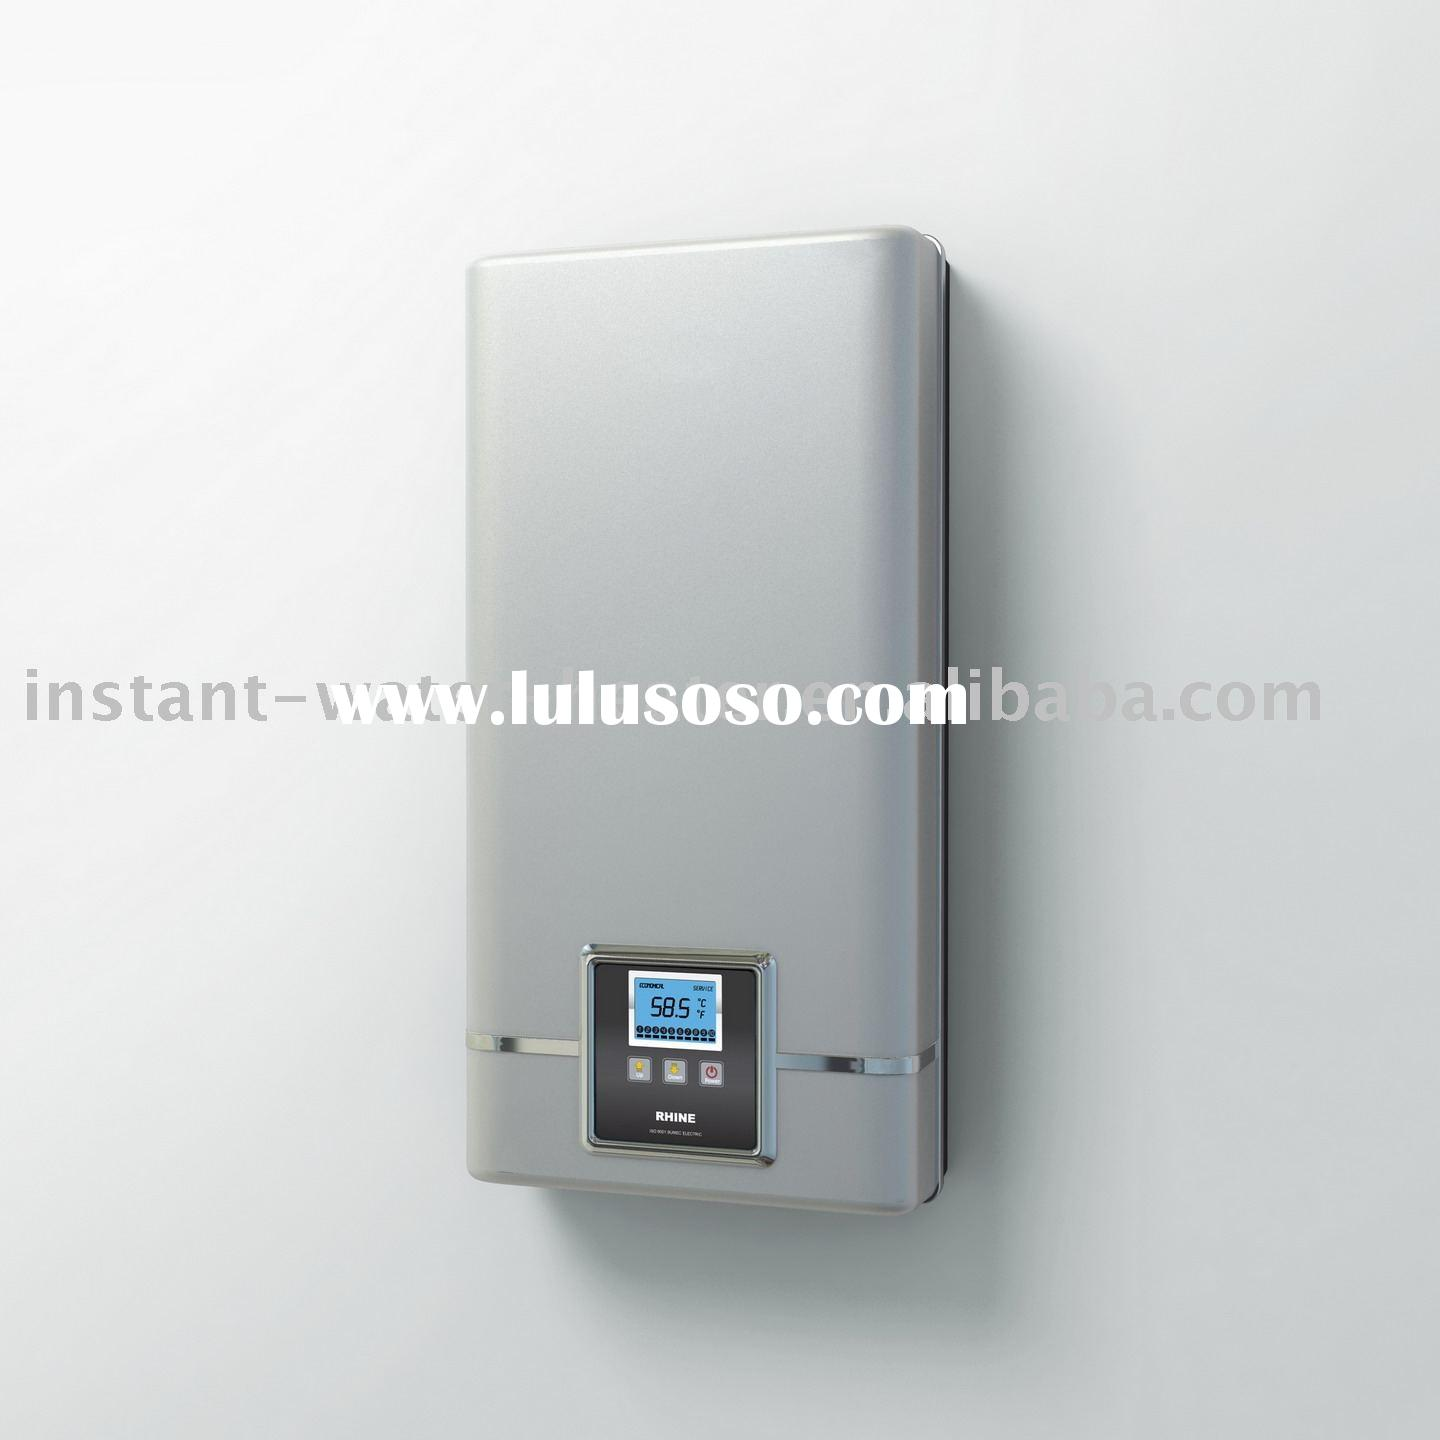 Bathroom Electric Tankless Water Heater For Sale Price China Manufacturer Supplier 96085